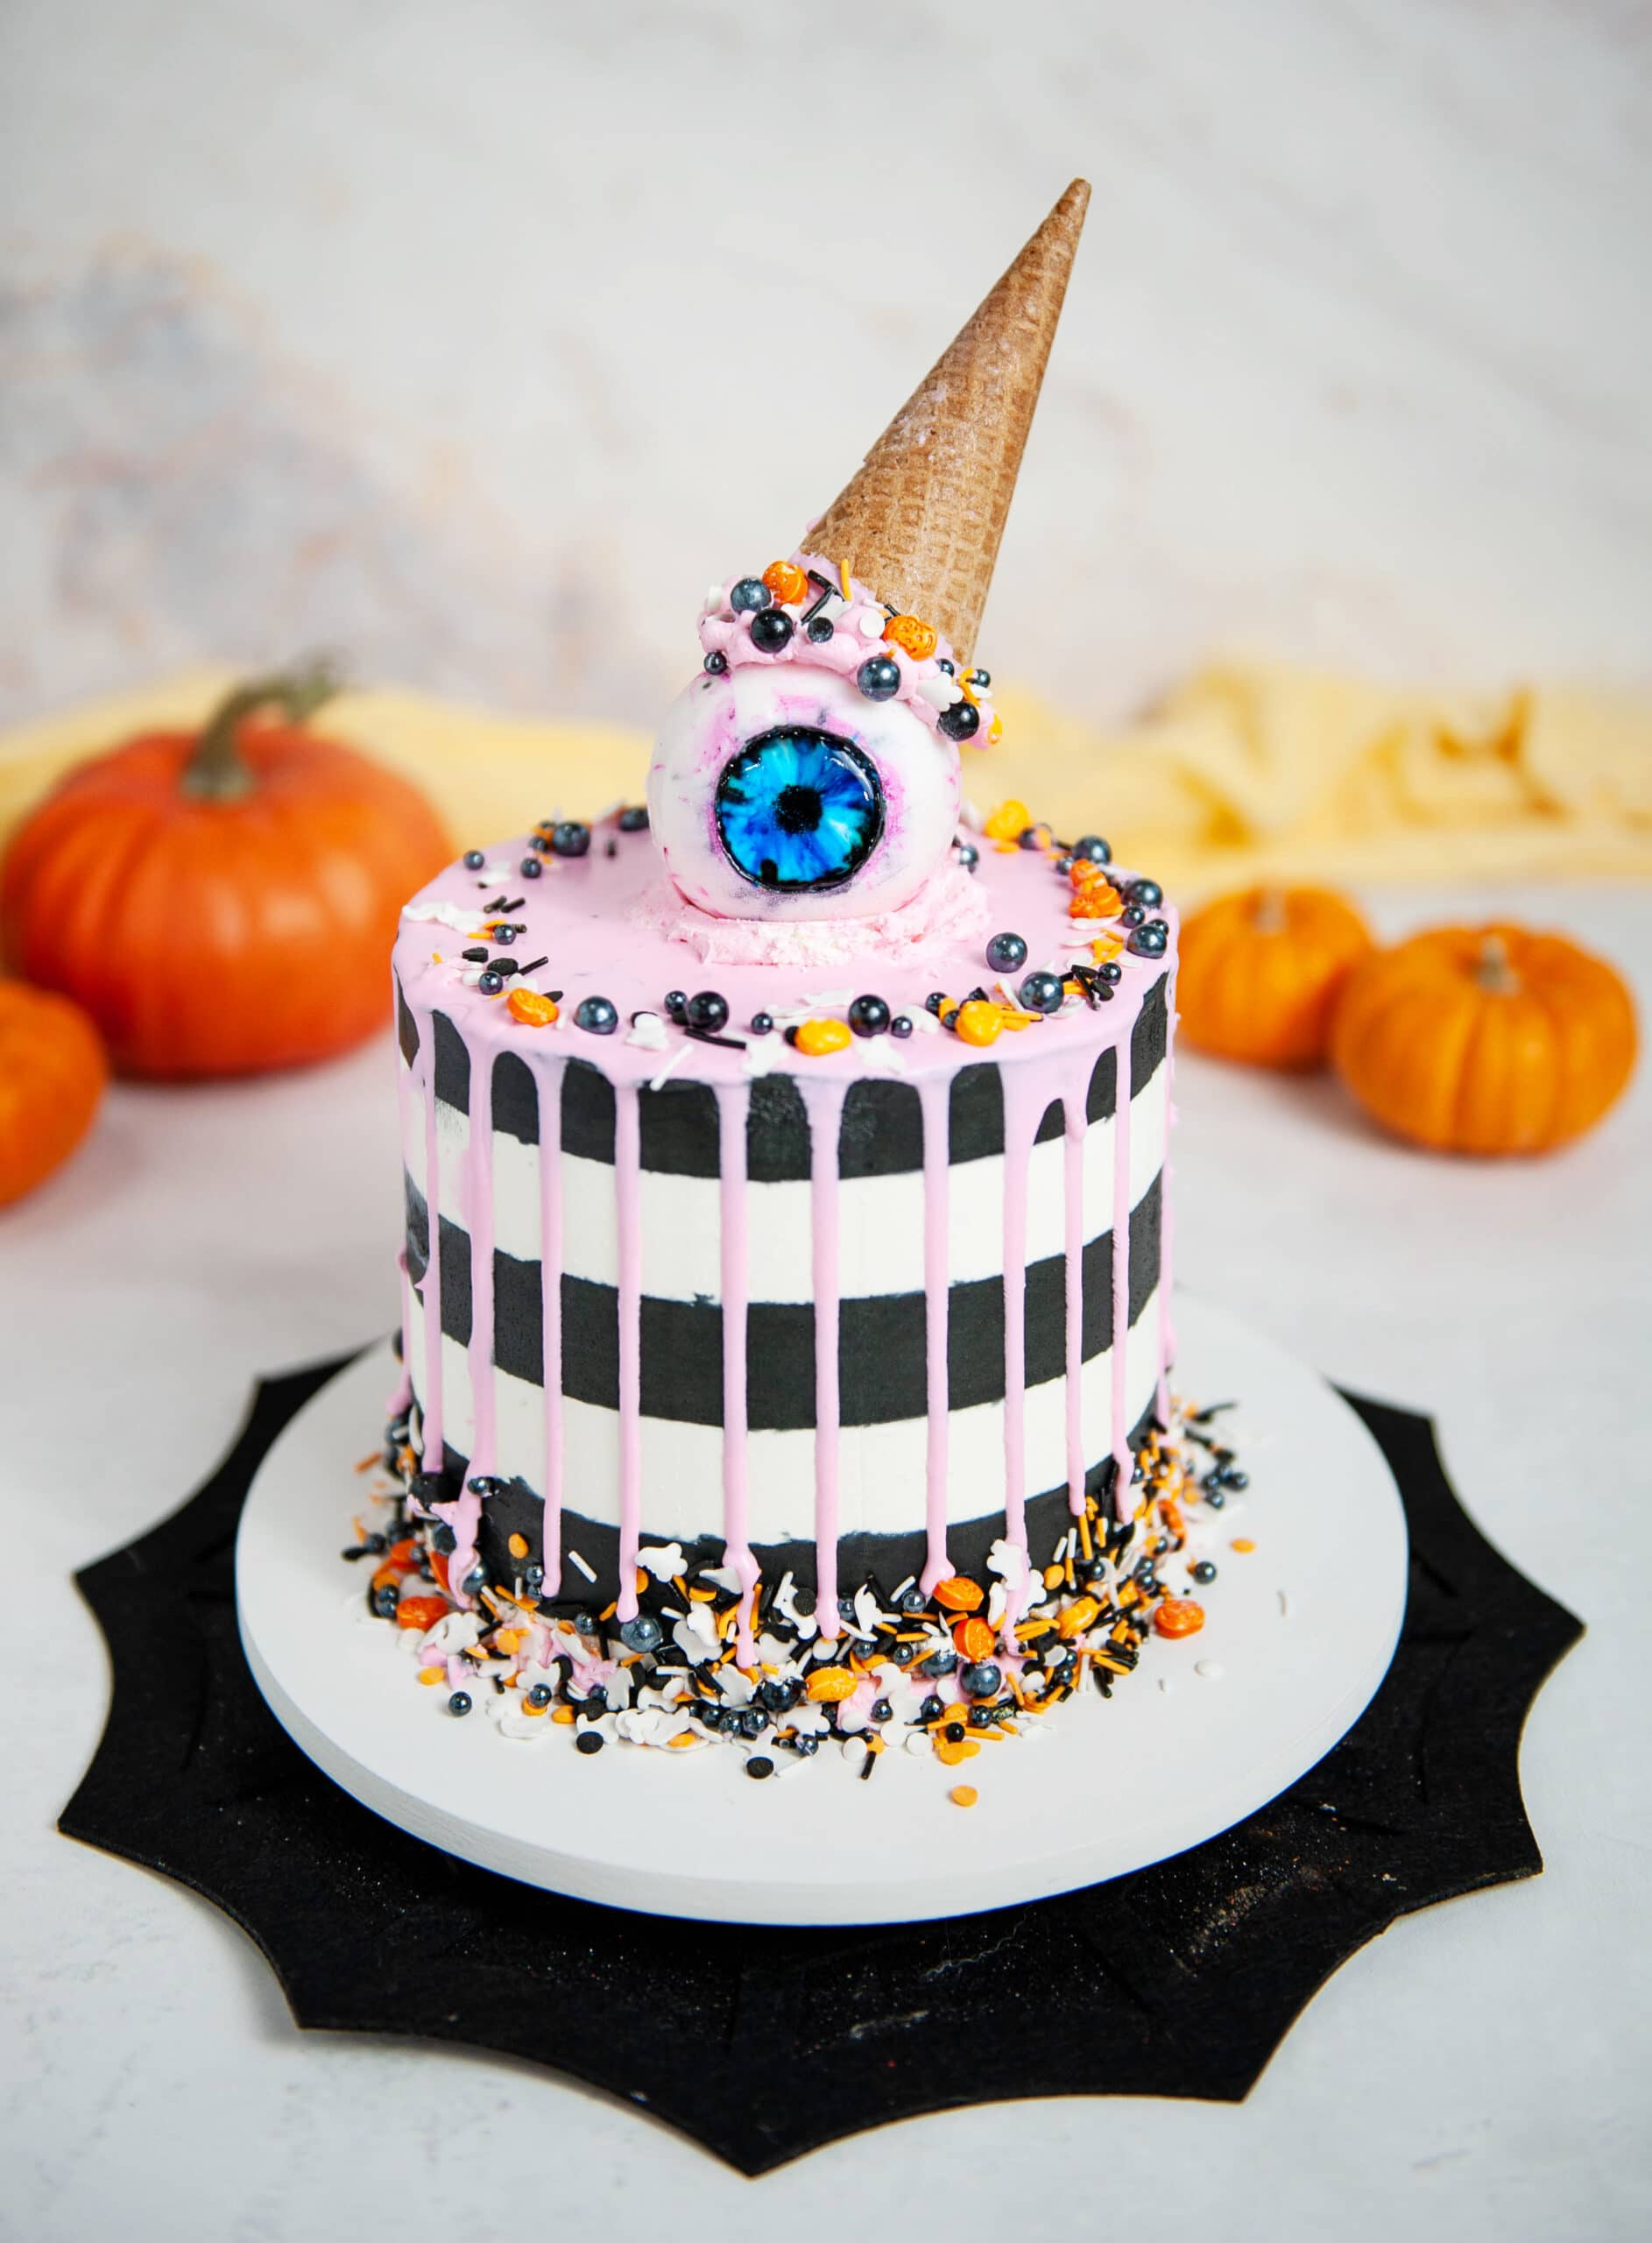 black and white striped cake with pink drip, gummy eyeball with ice cream cone on top